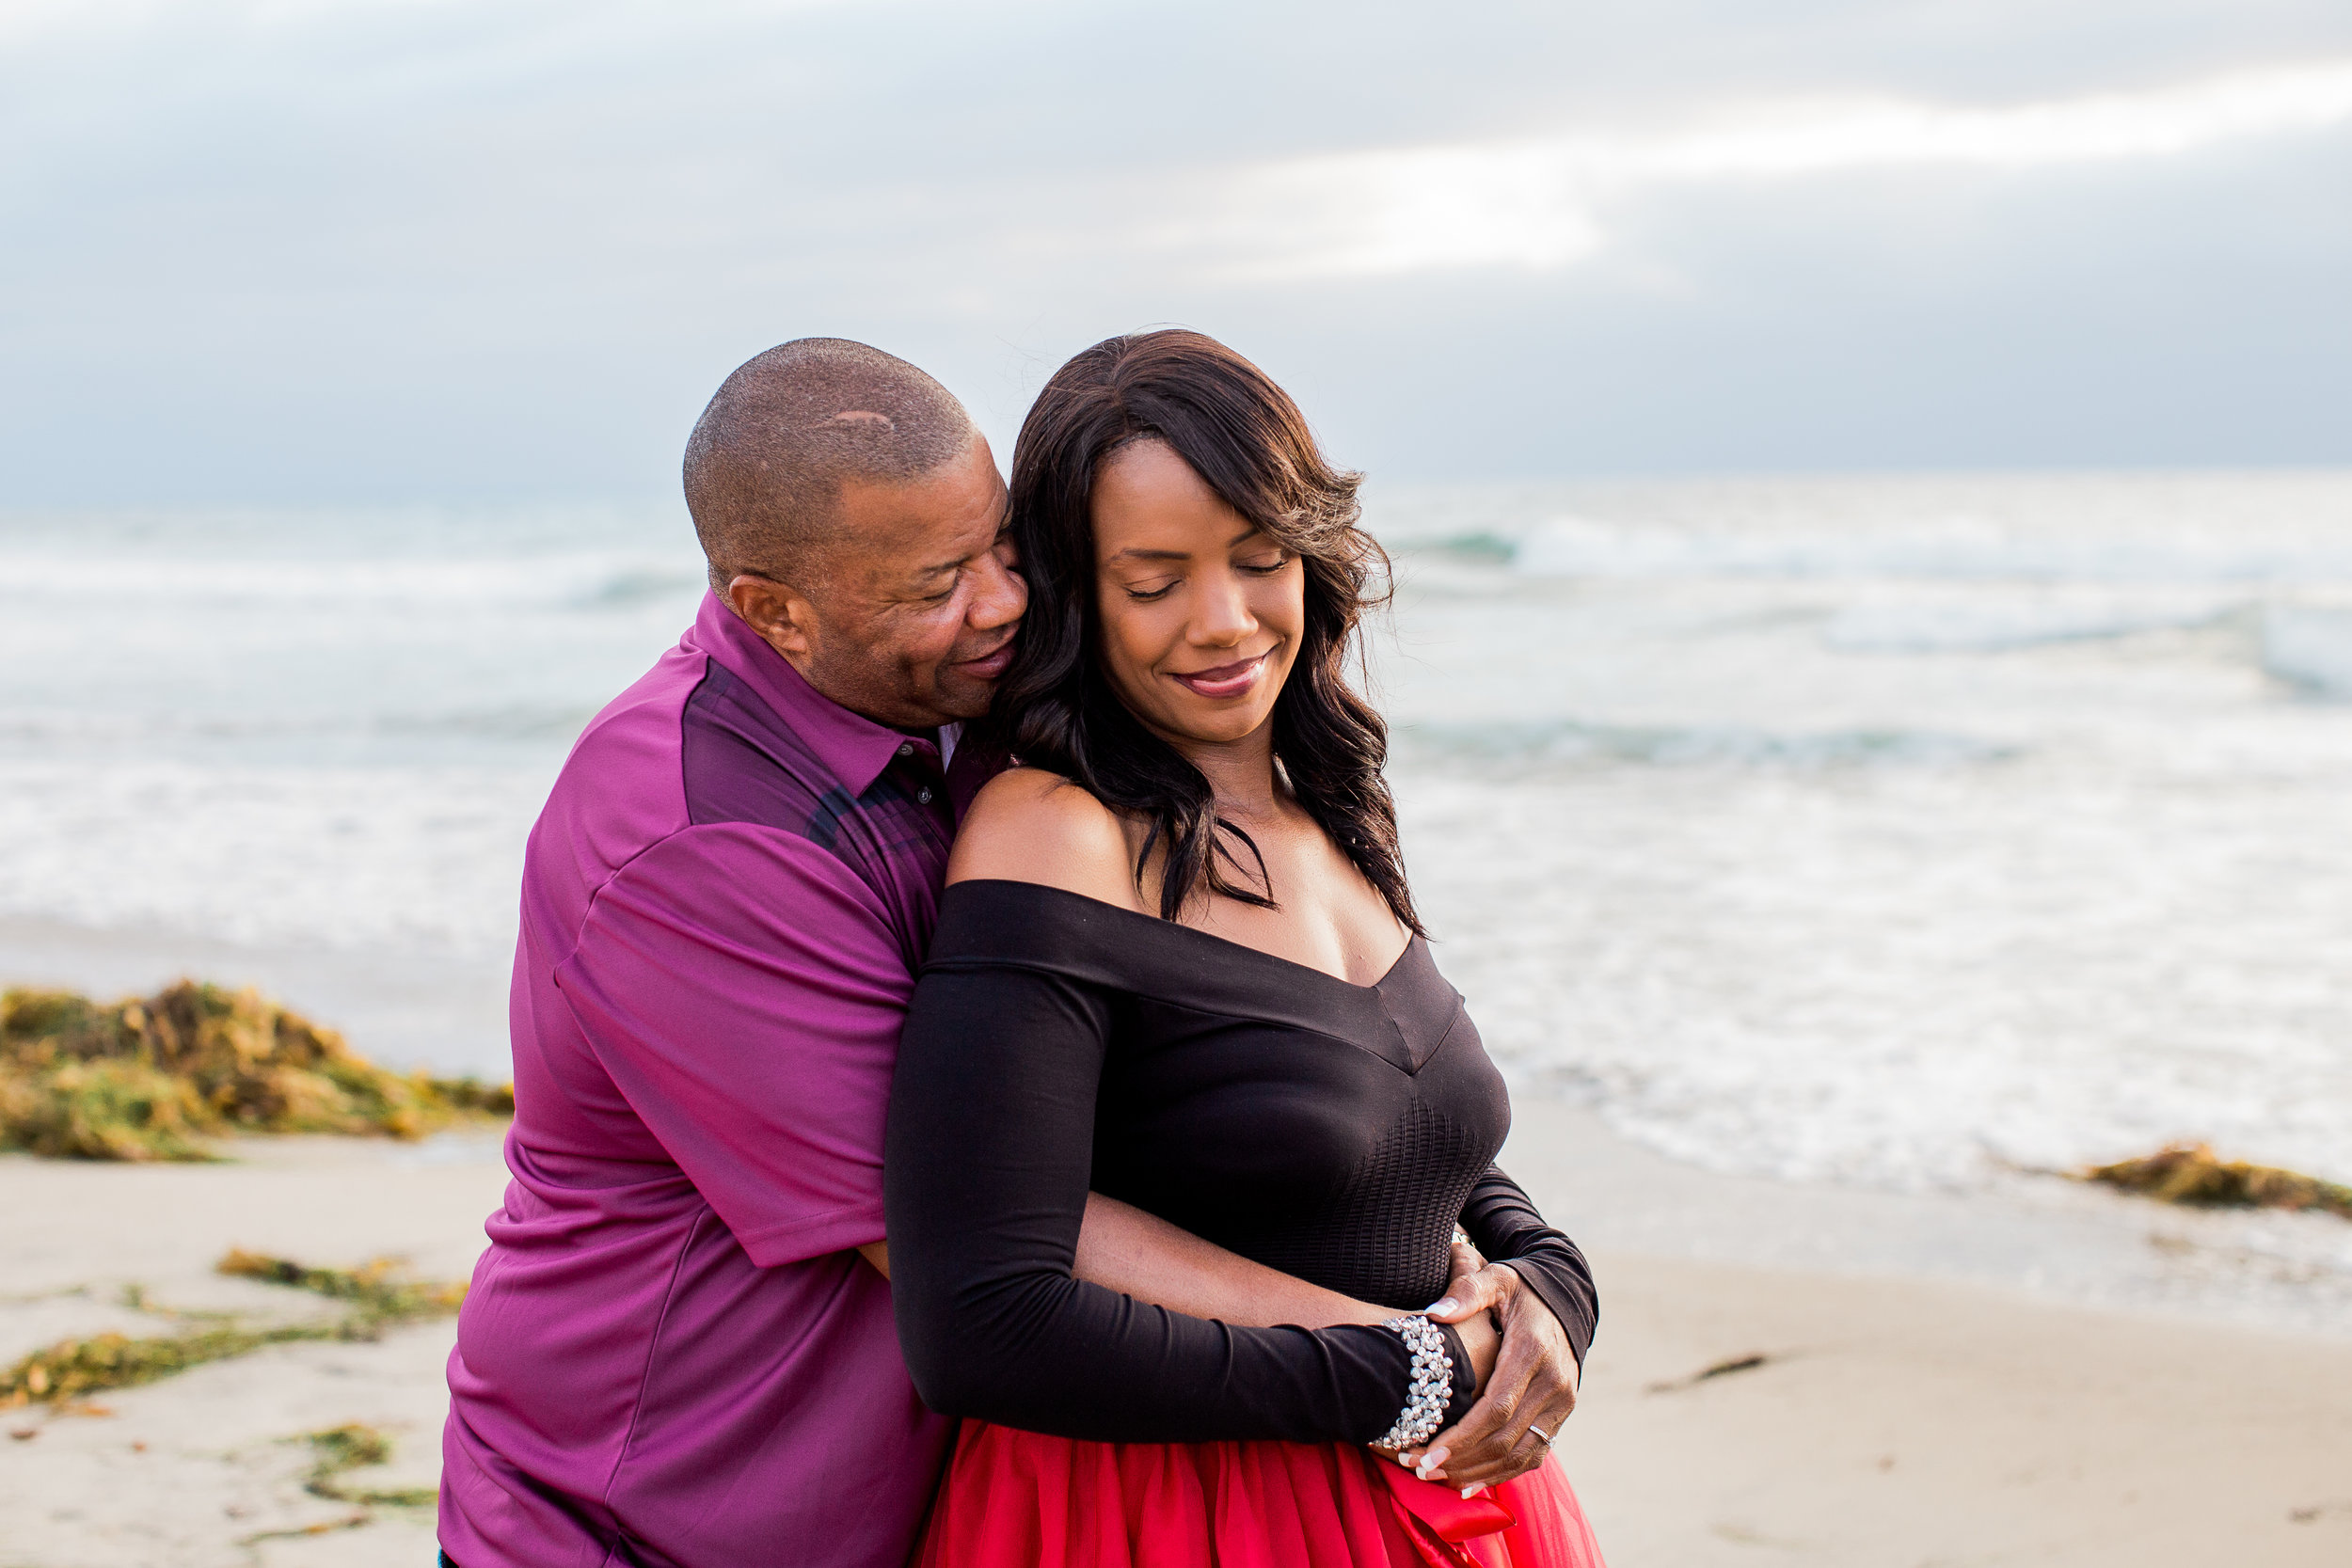 san-diego-pacific-beach-styled-engagement-romantic-photographer (37 of 76).jpg